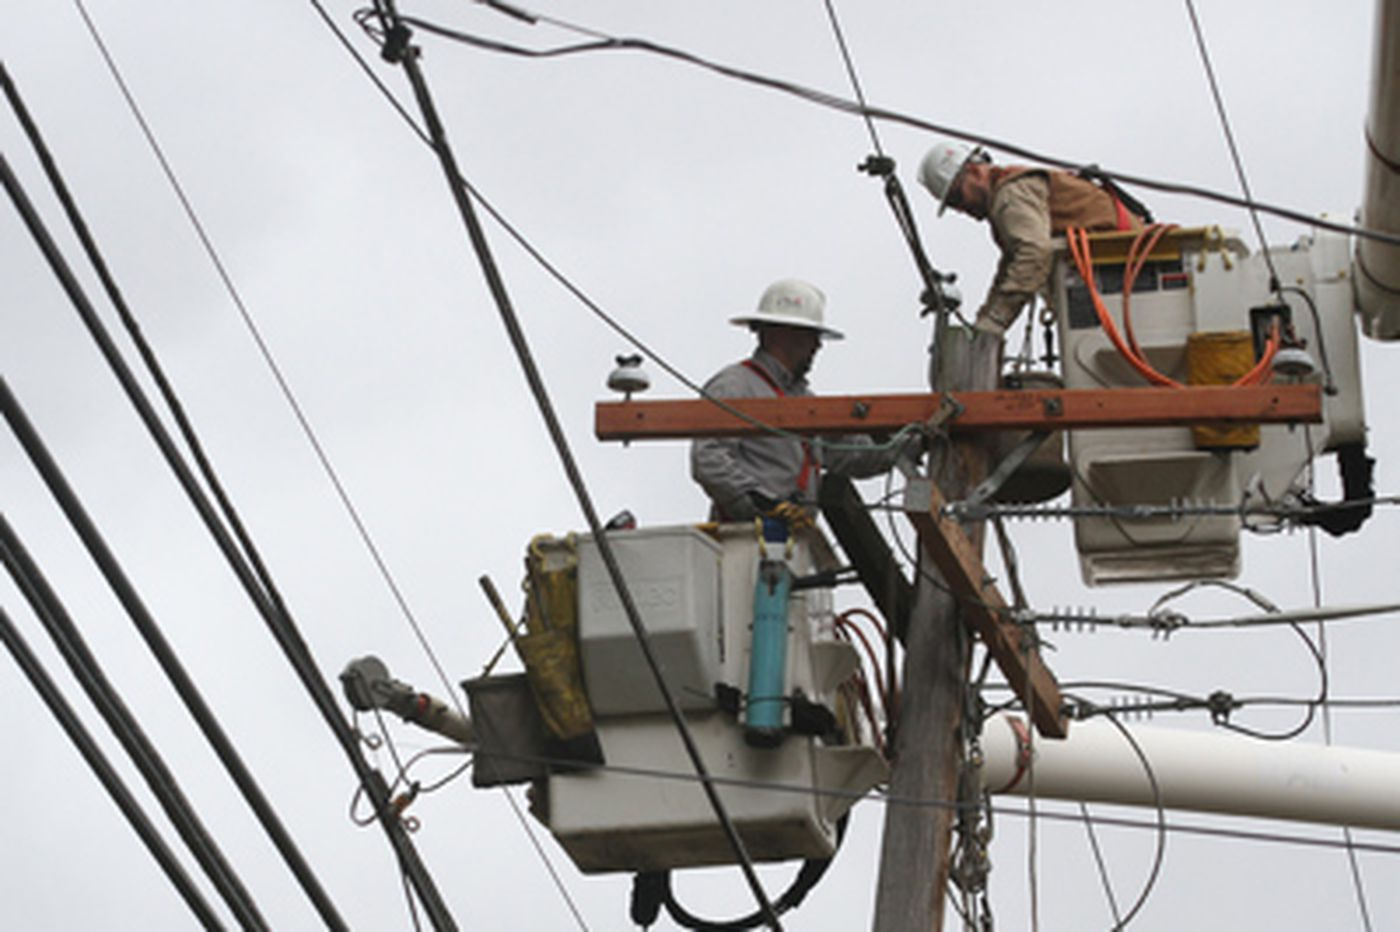 L. Merion, other Montco residents endure long wait for power